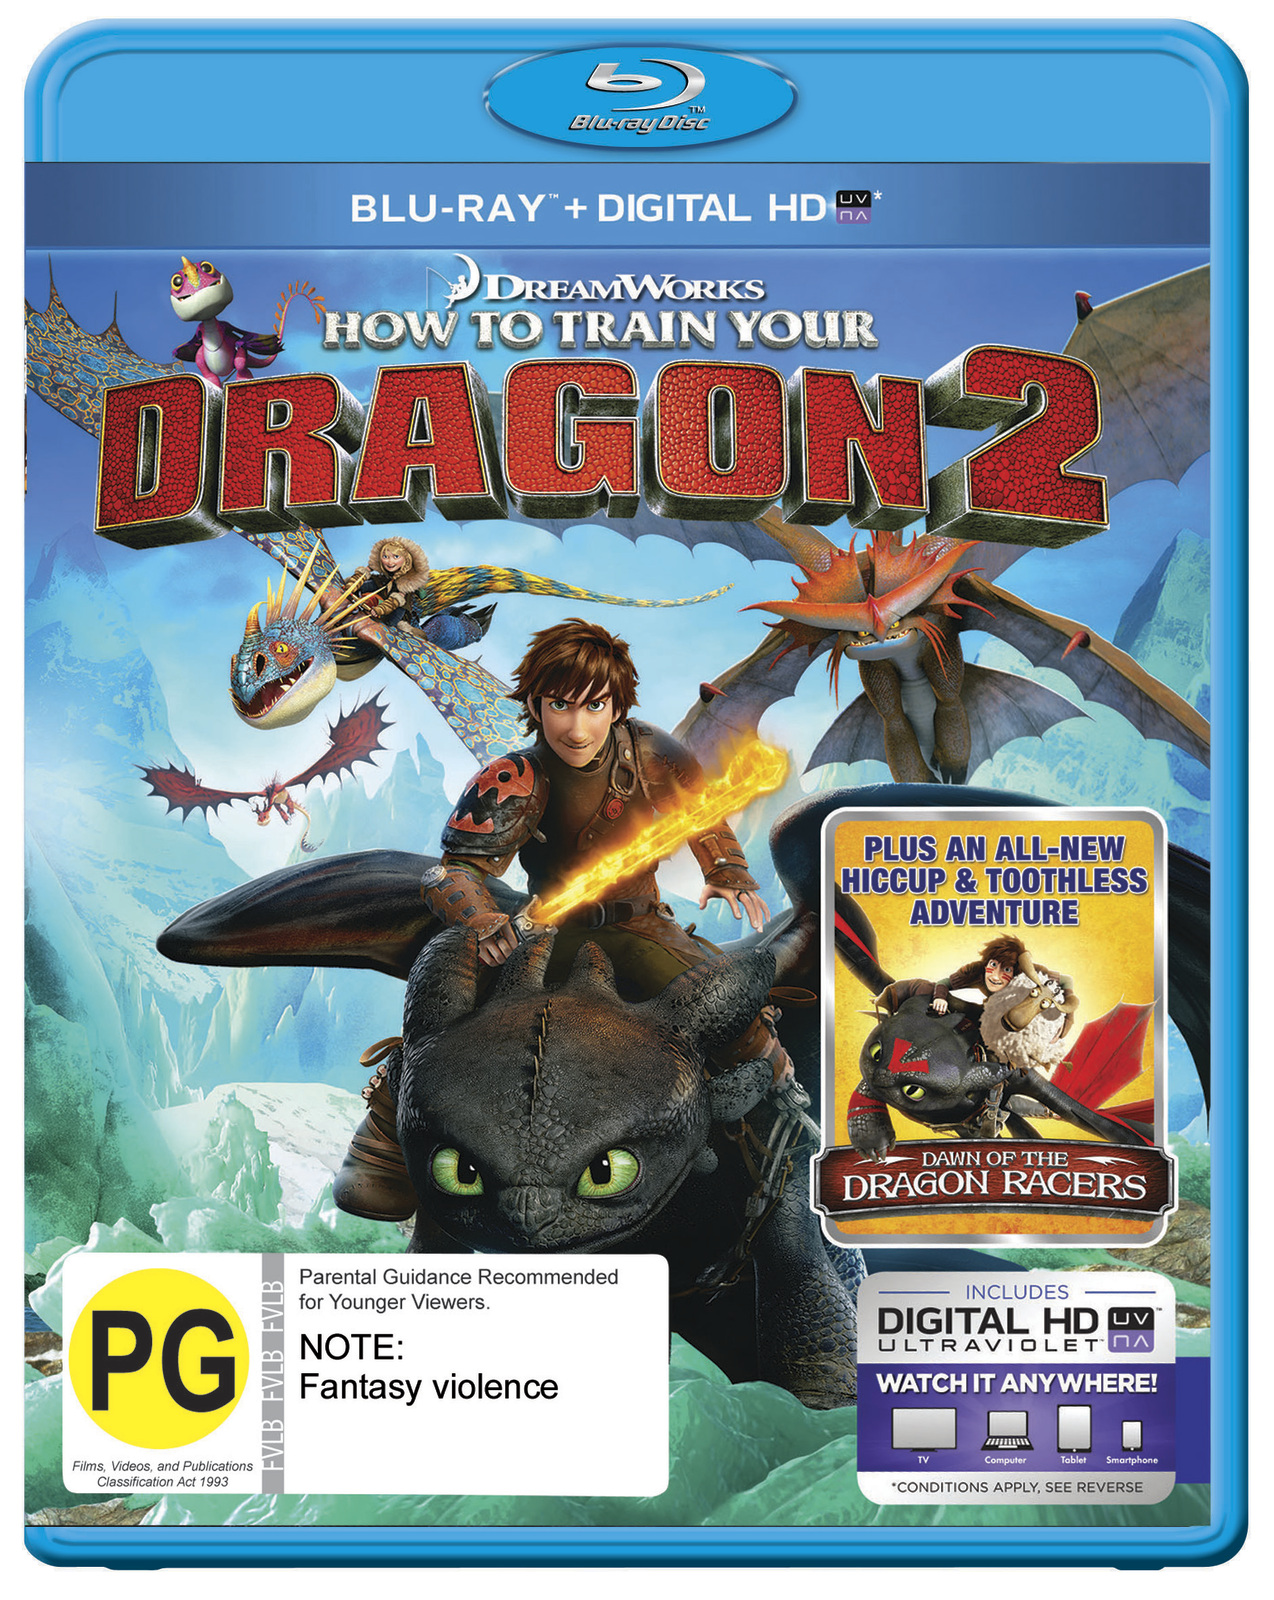 How To Train Your Dragon 2 on Blu-ray image